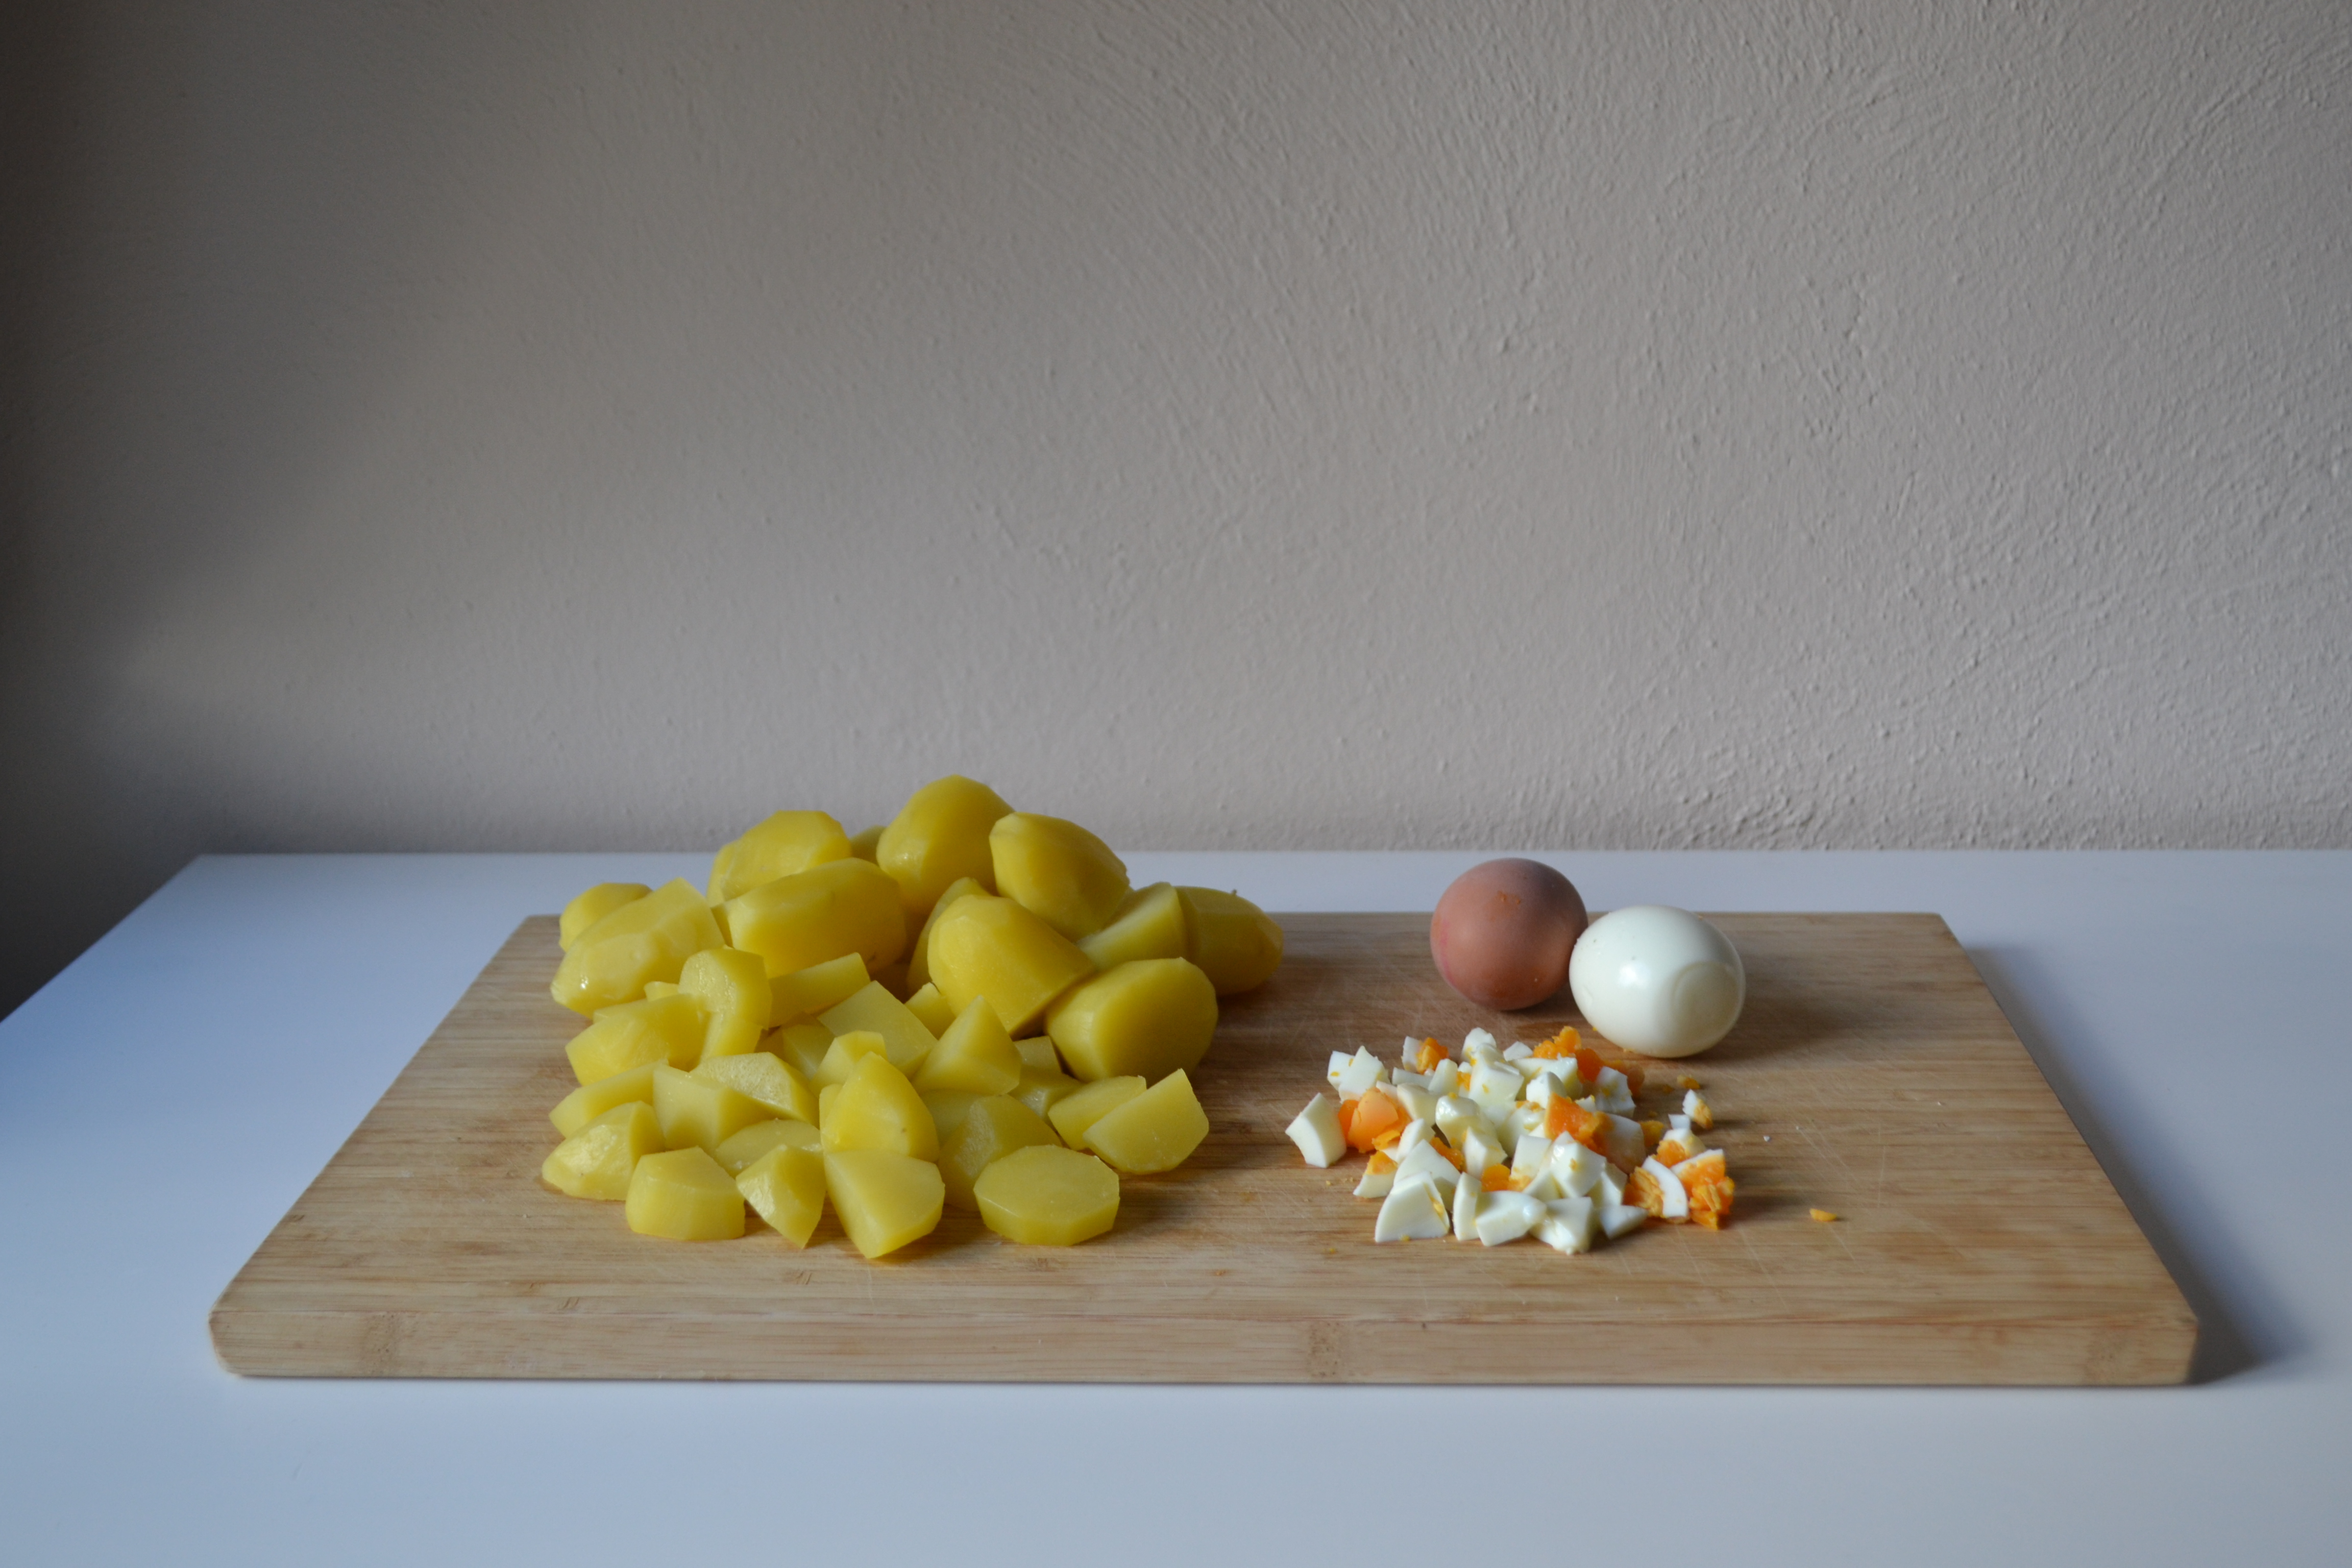 Peel and finely dice cold eggs. Cut potatoes in large chunks (to preference). Put them in a large bowl, together with the pickles and apple pieces.